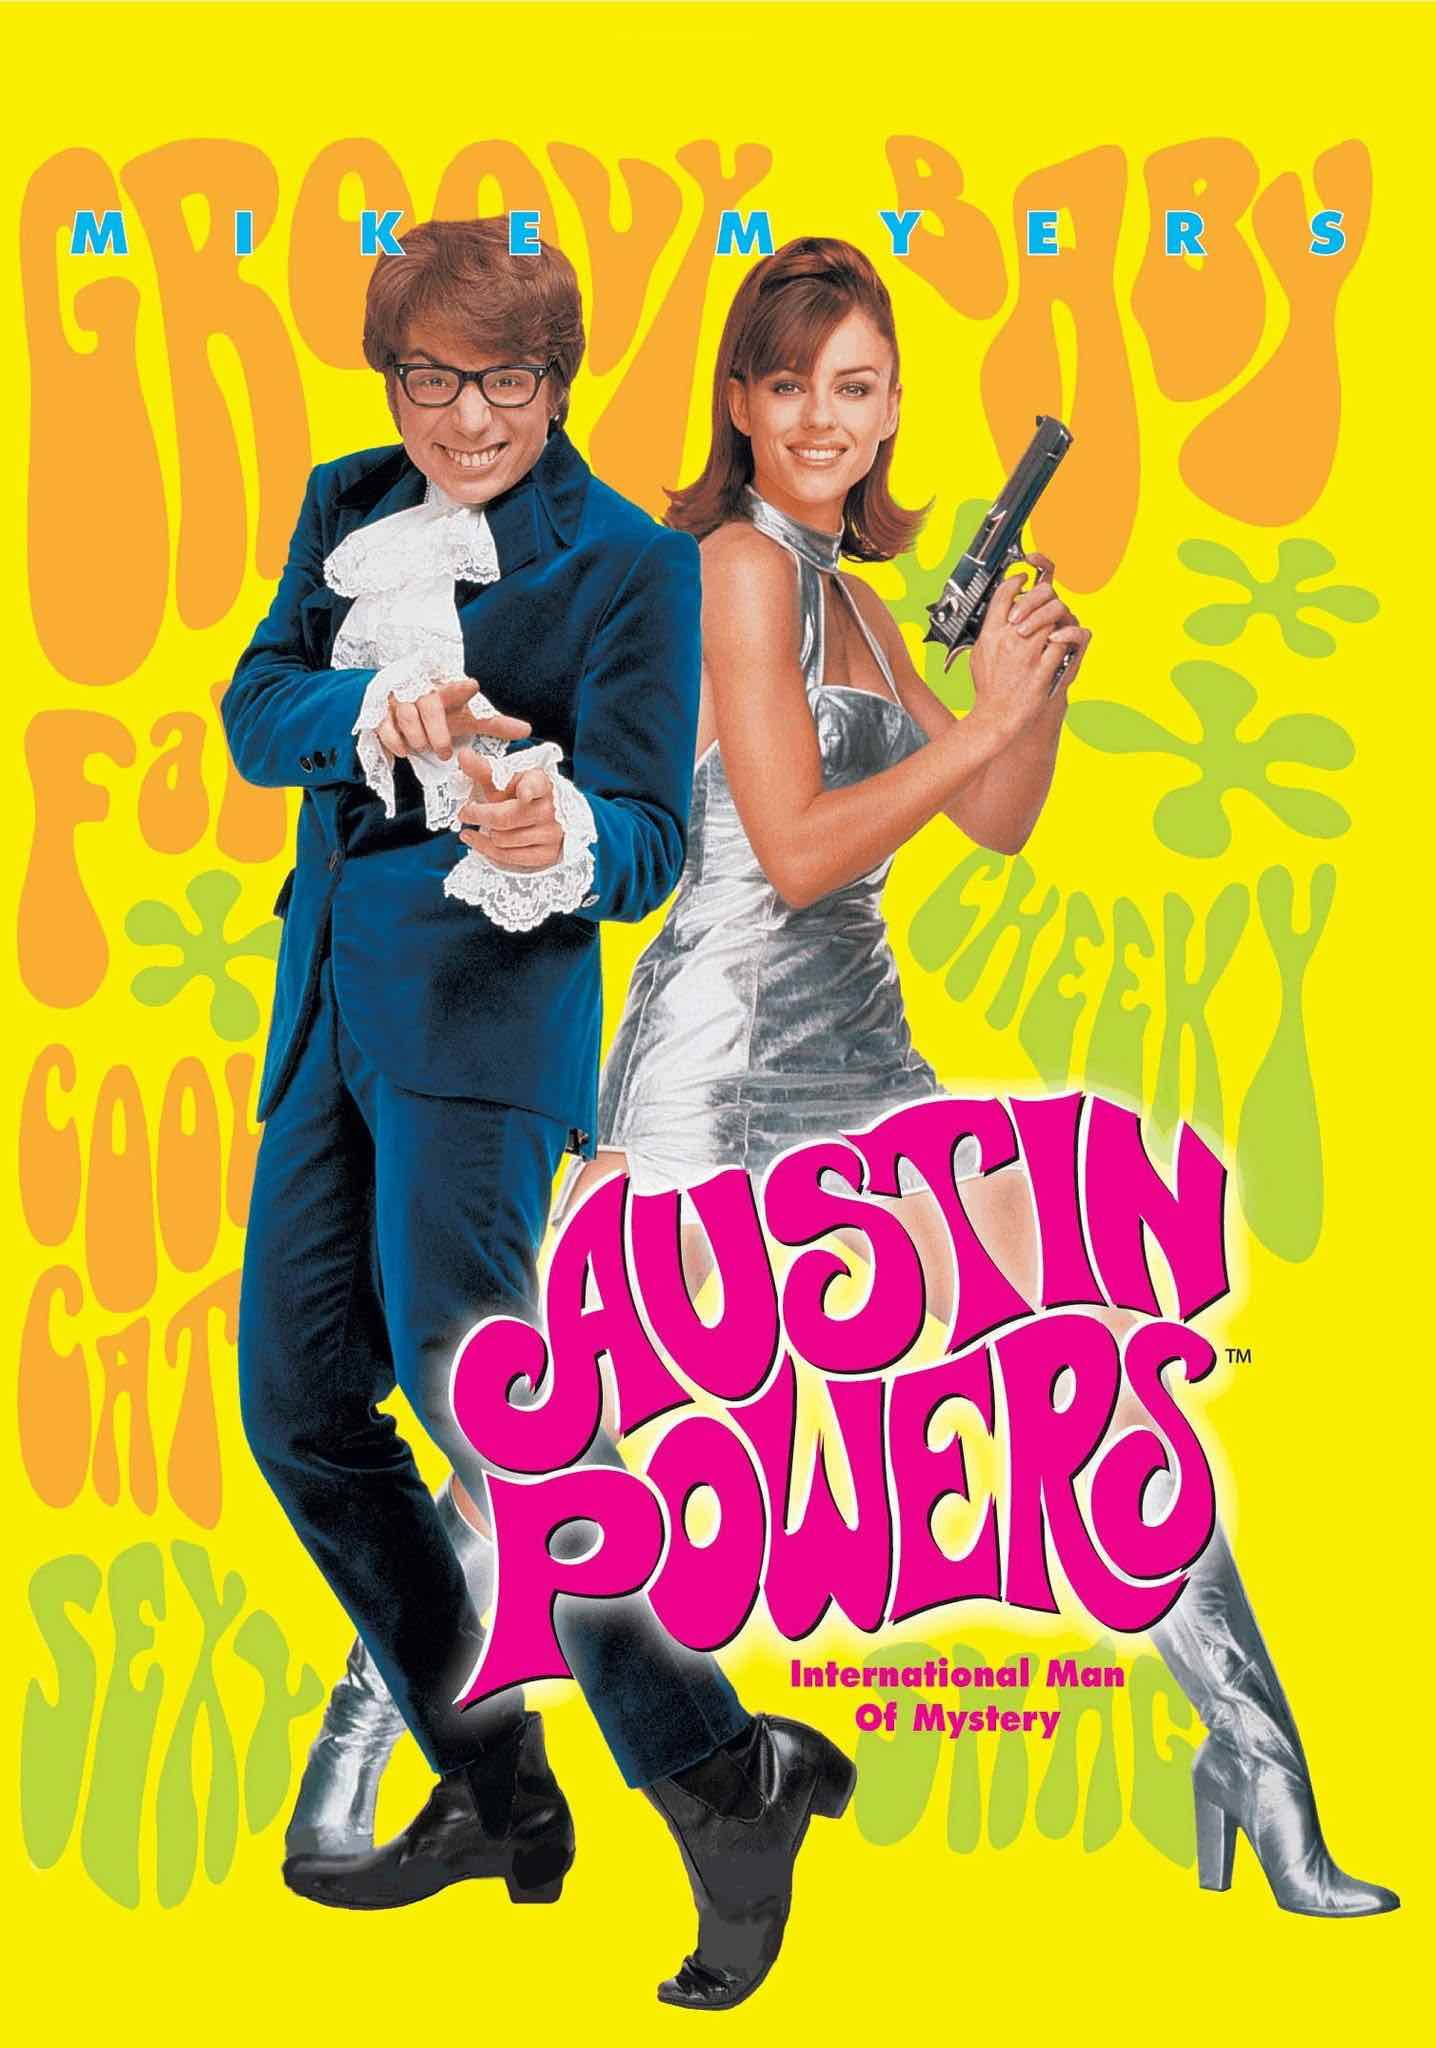 Today, 'Austin Powers' is the gold standard of parodies. Here's a look into the famous blackjack scene and why 'Austin Powers' is still relevant.